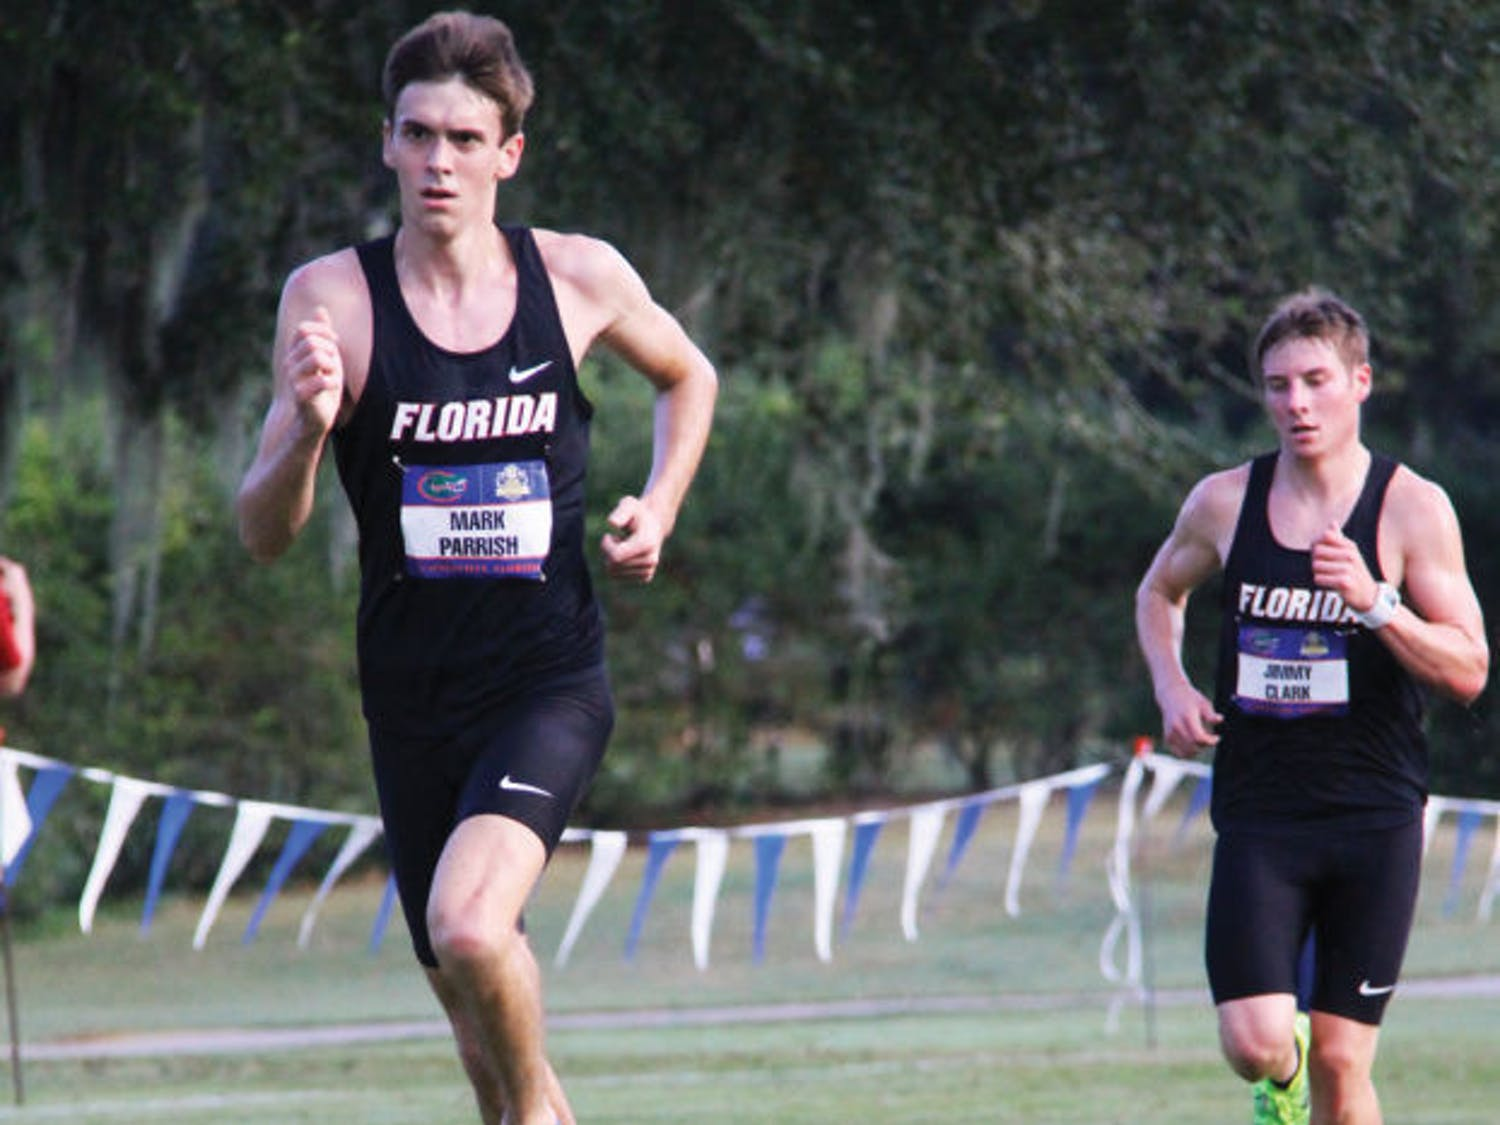 Mark Parrish (left) and Jimmy Clark run during the SEC Championships on Nov. 1 in Gainesville. The NCAA Championships begin today.